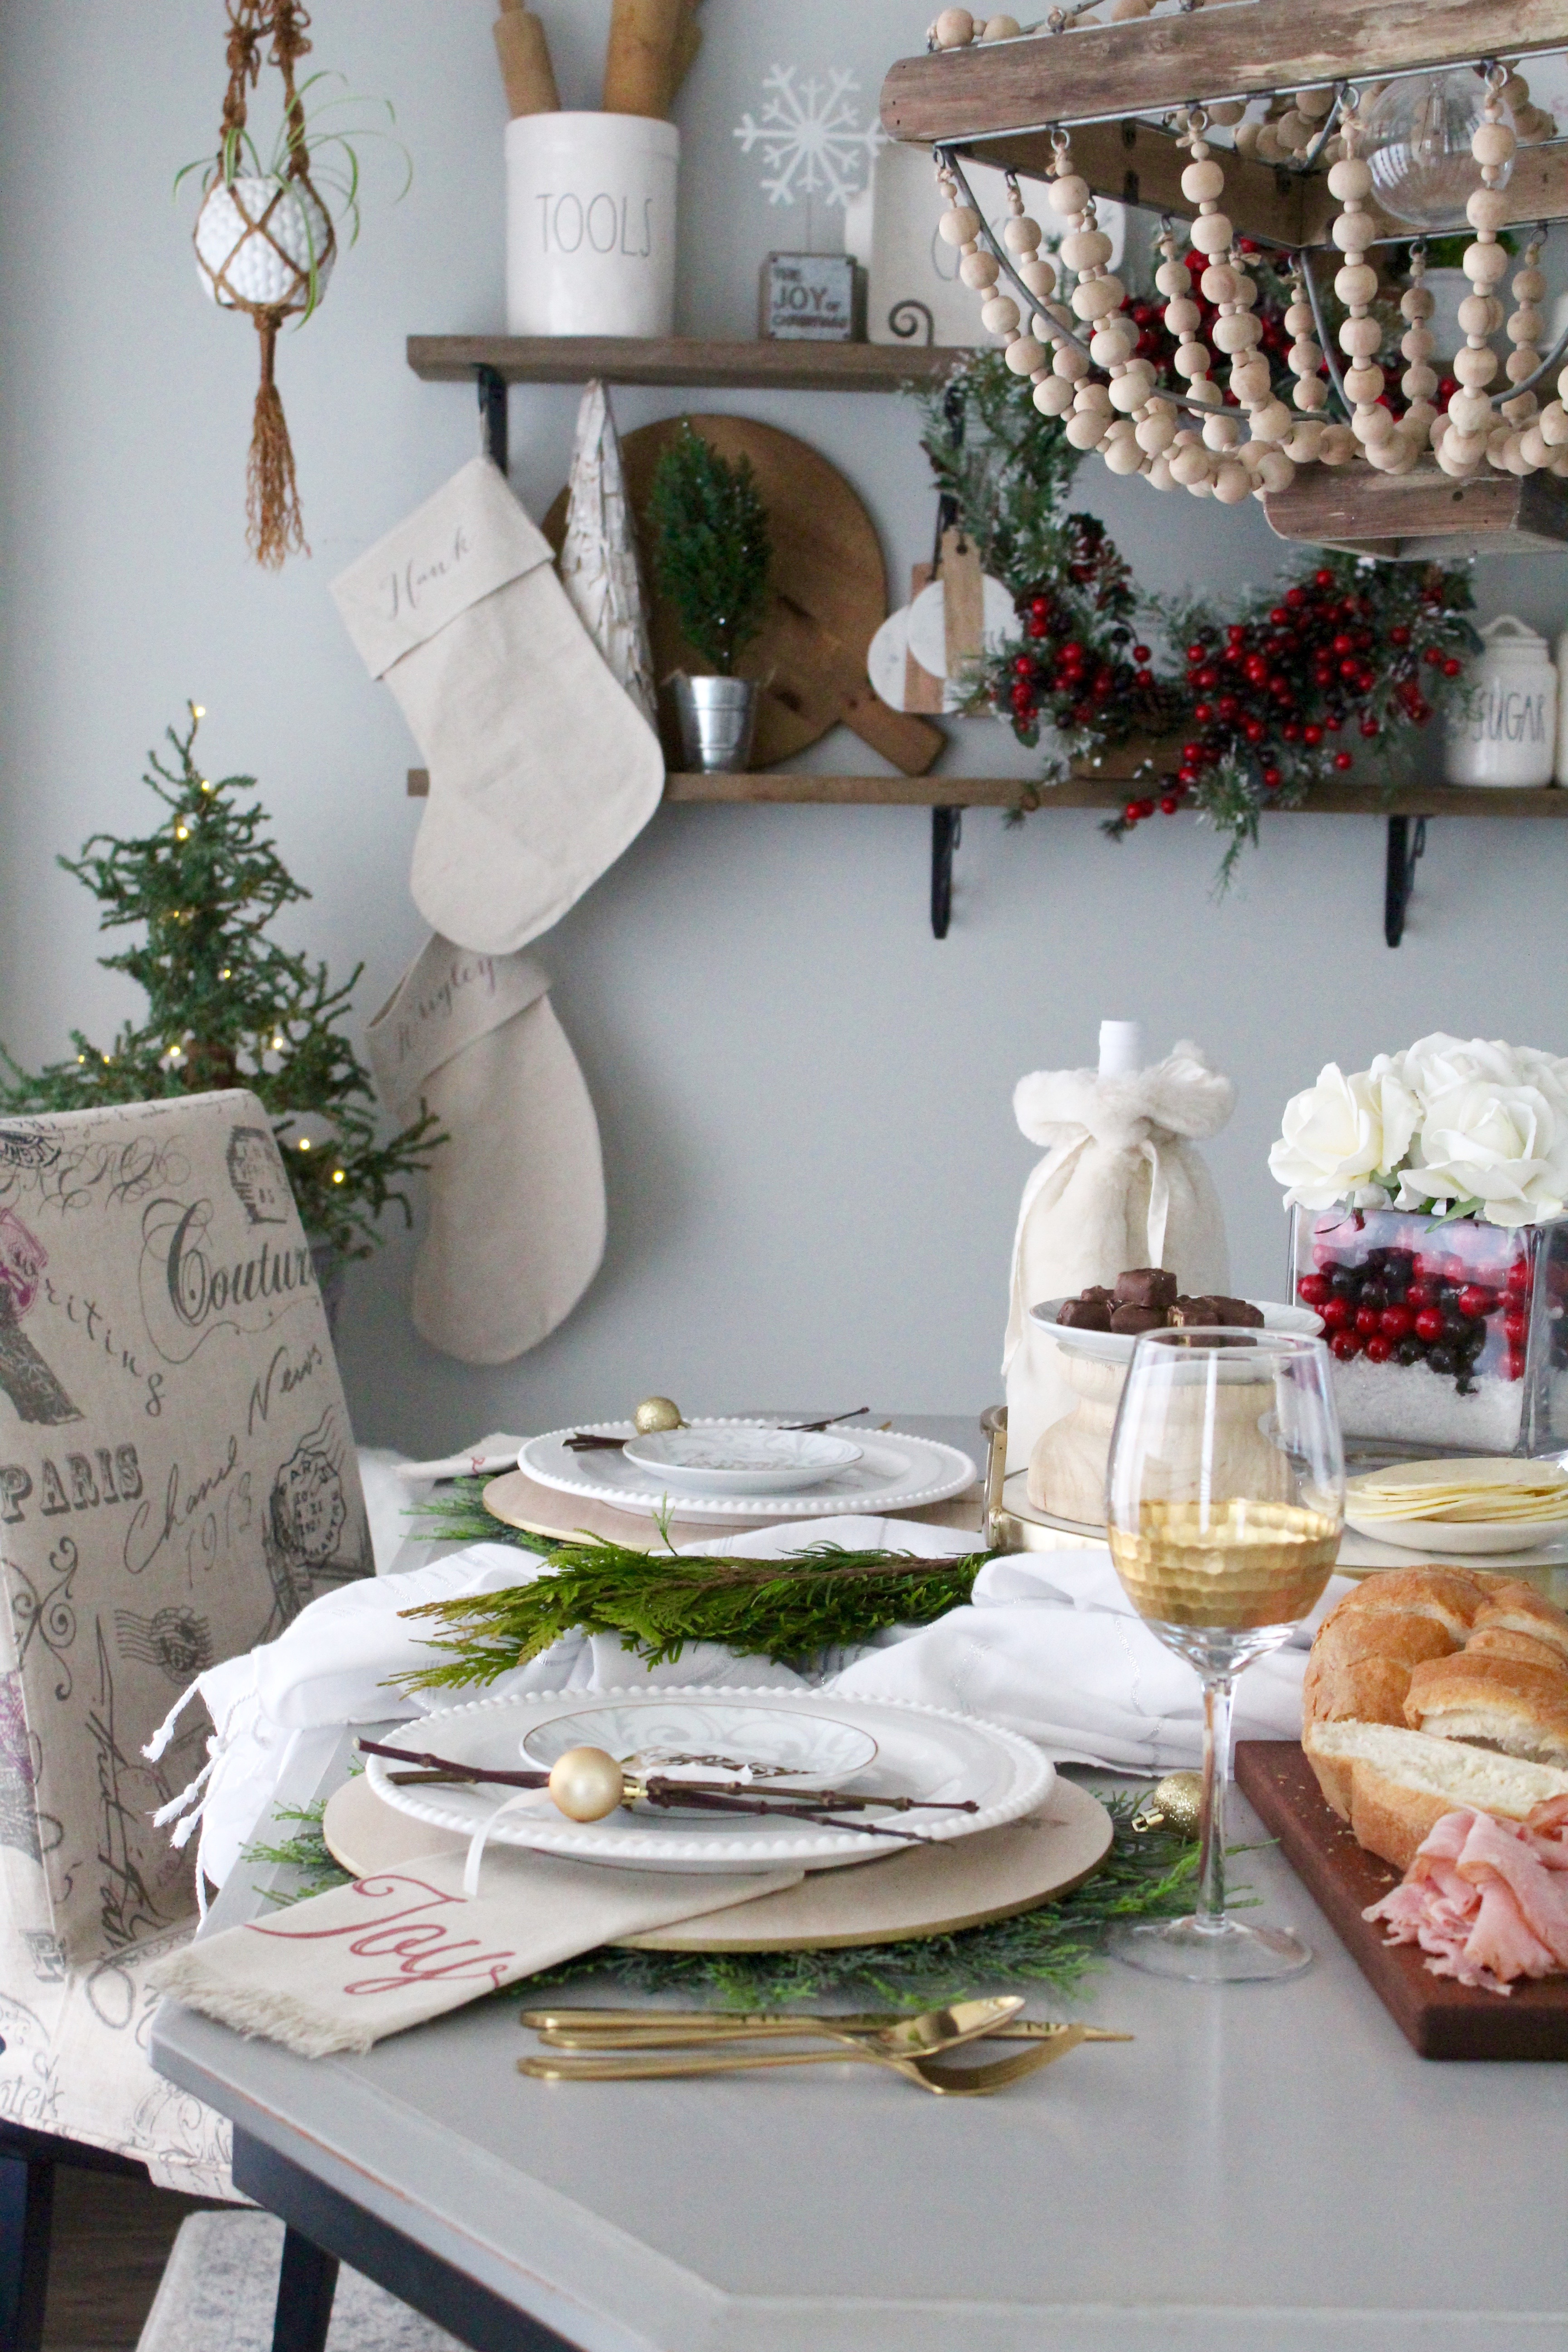 Simple and charming table setting